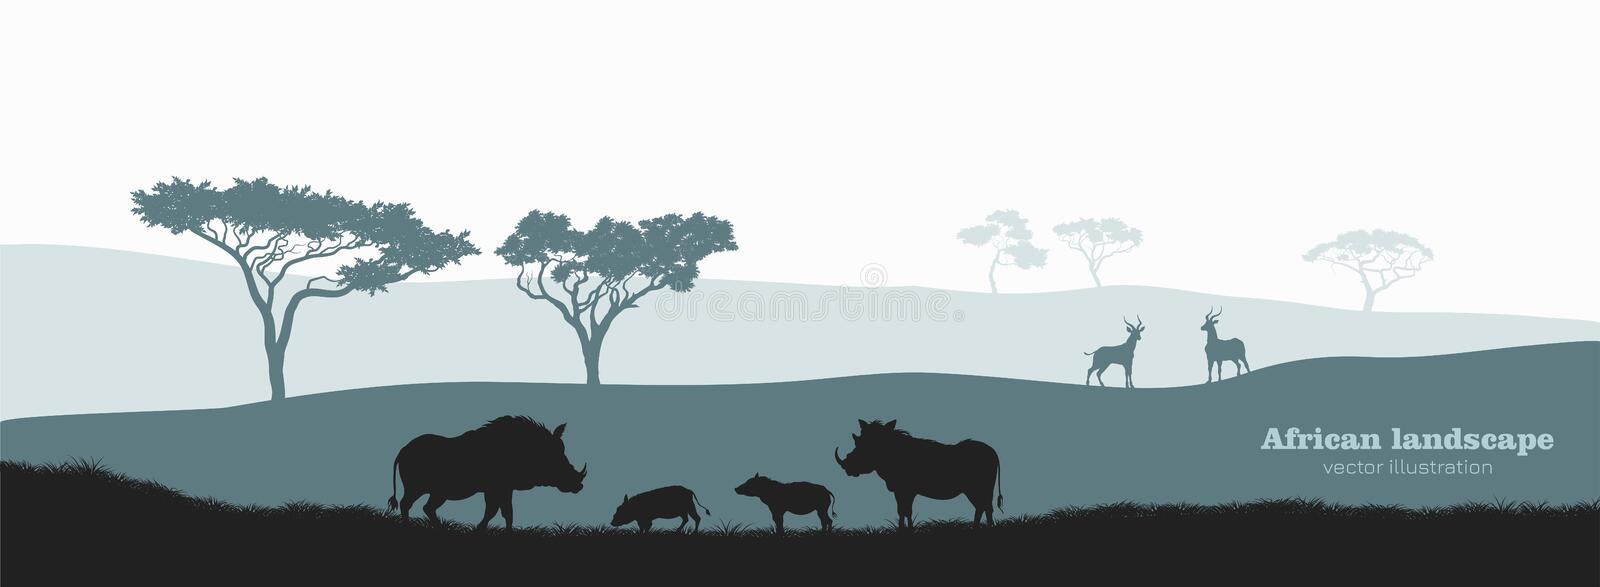 Black silhouette of african boar. Scenery with desert warthog family. Landscape with wild african animals royalty free illustration